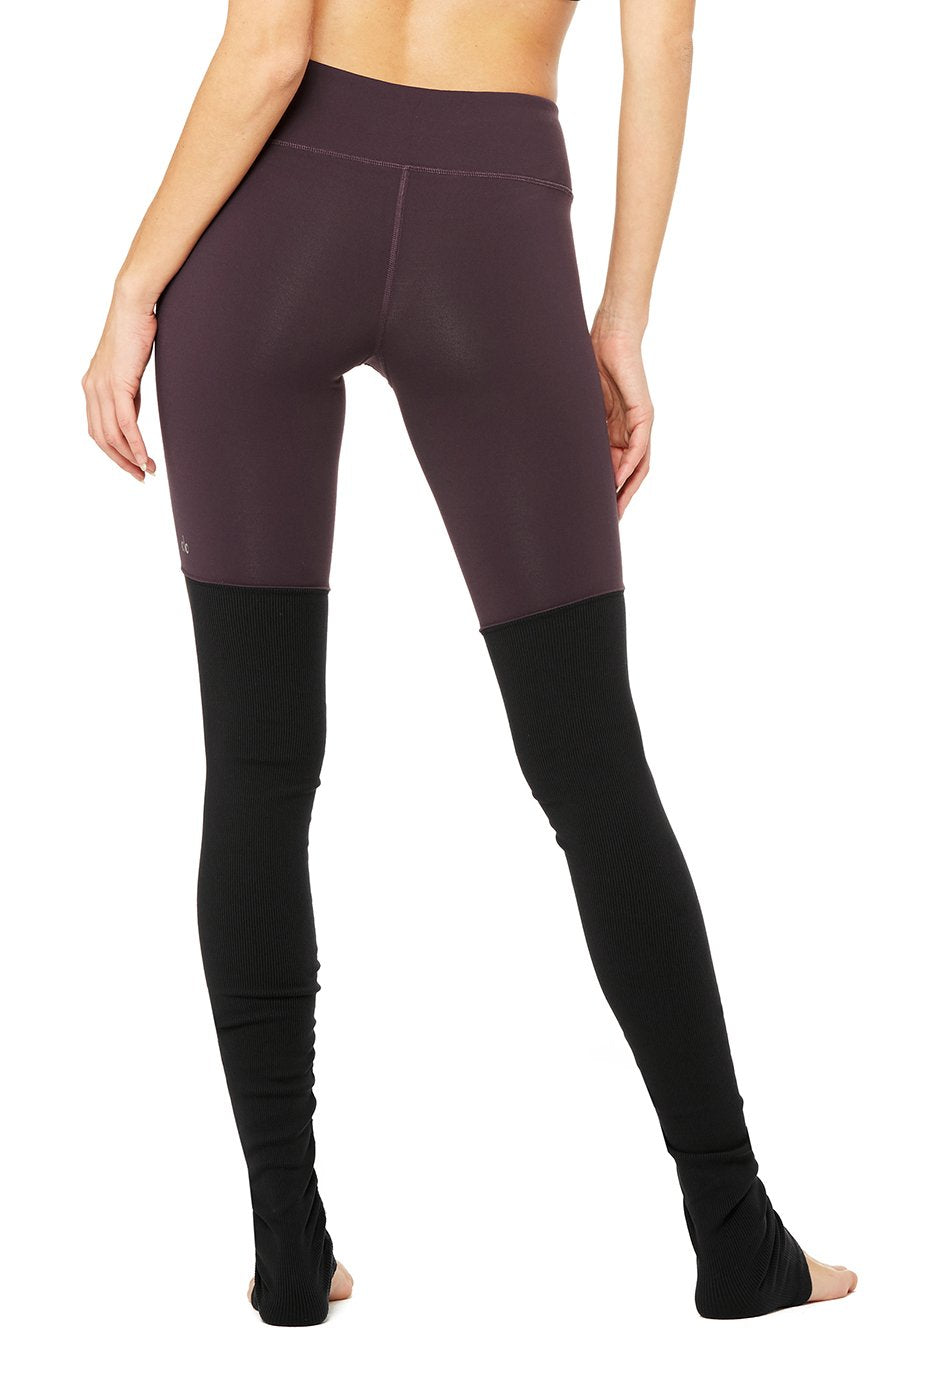 Alo Yoga Goddess leggings (eggplant/black)